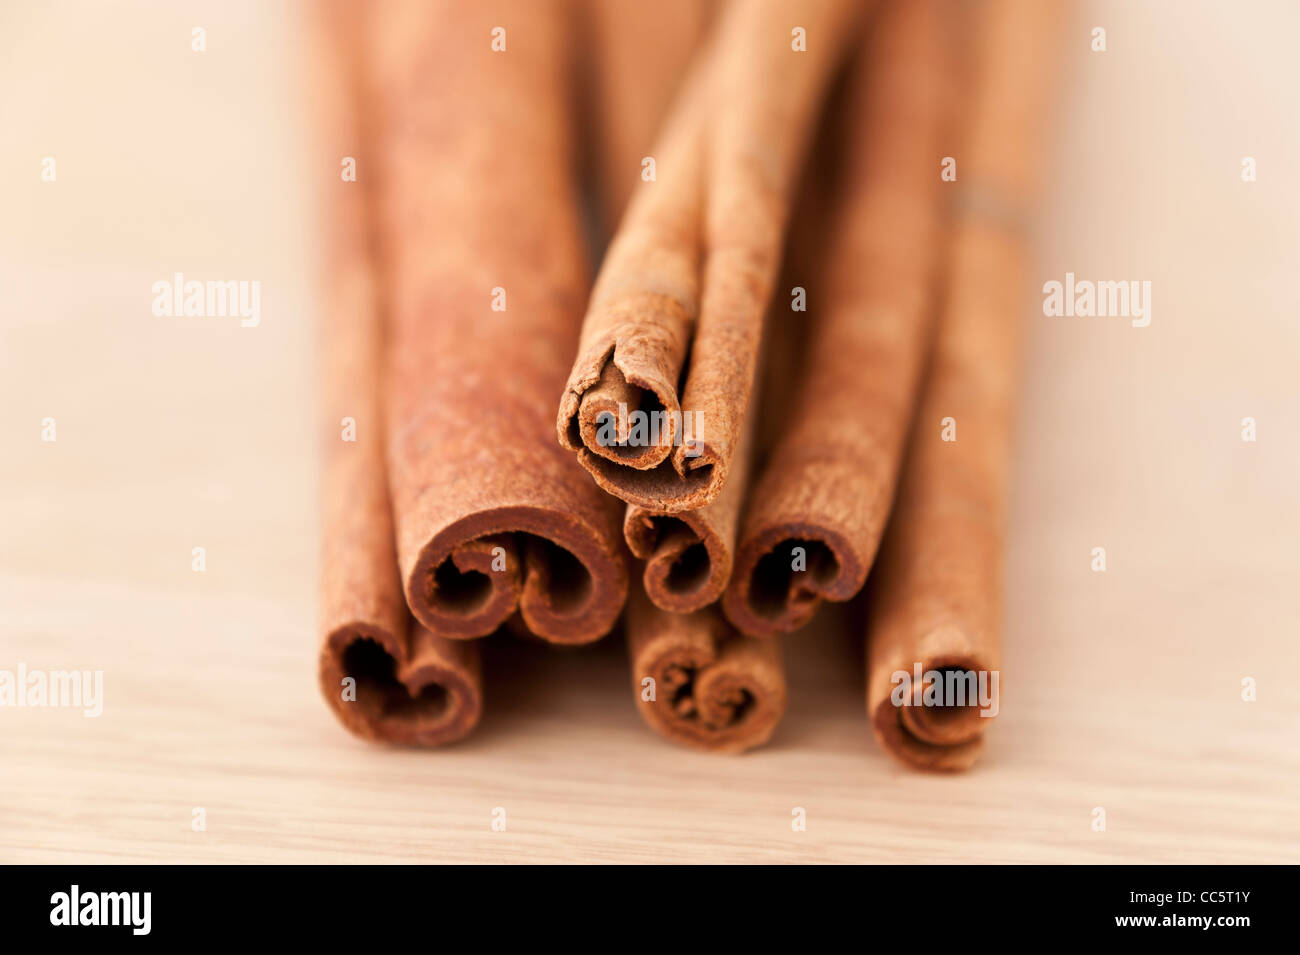 Pile of Cinnamon sticks on a wooden surface - Stock Image